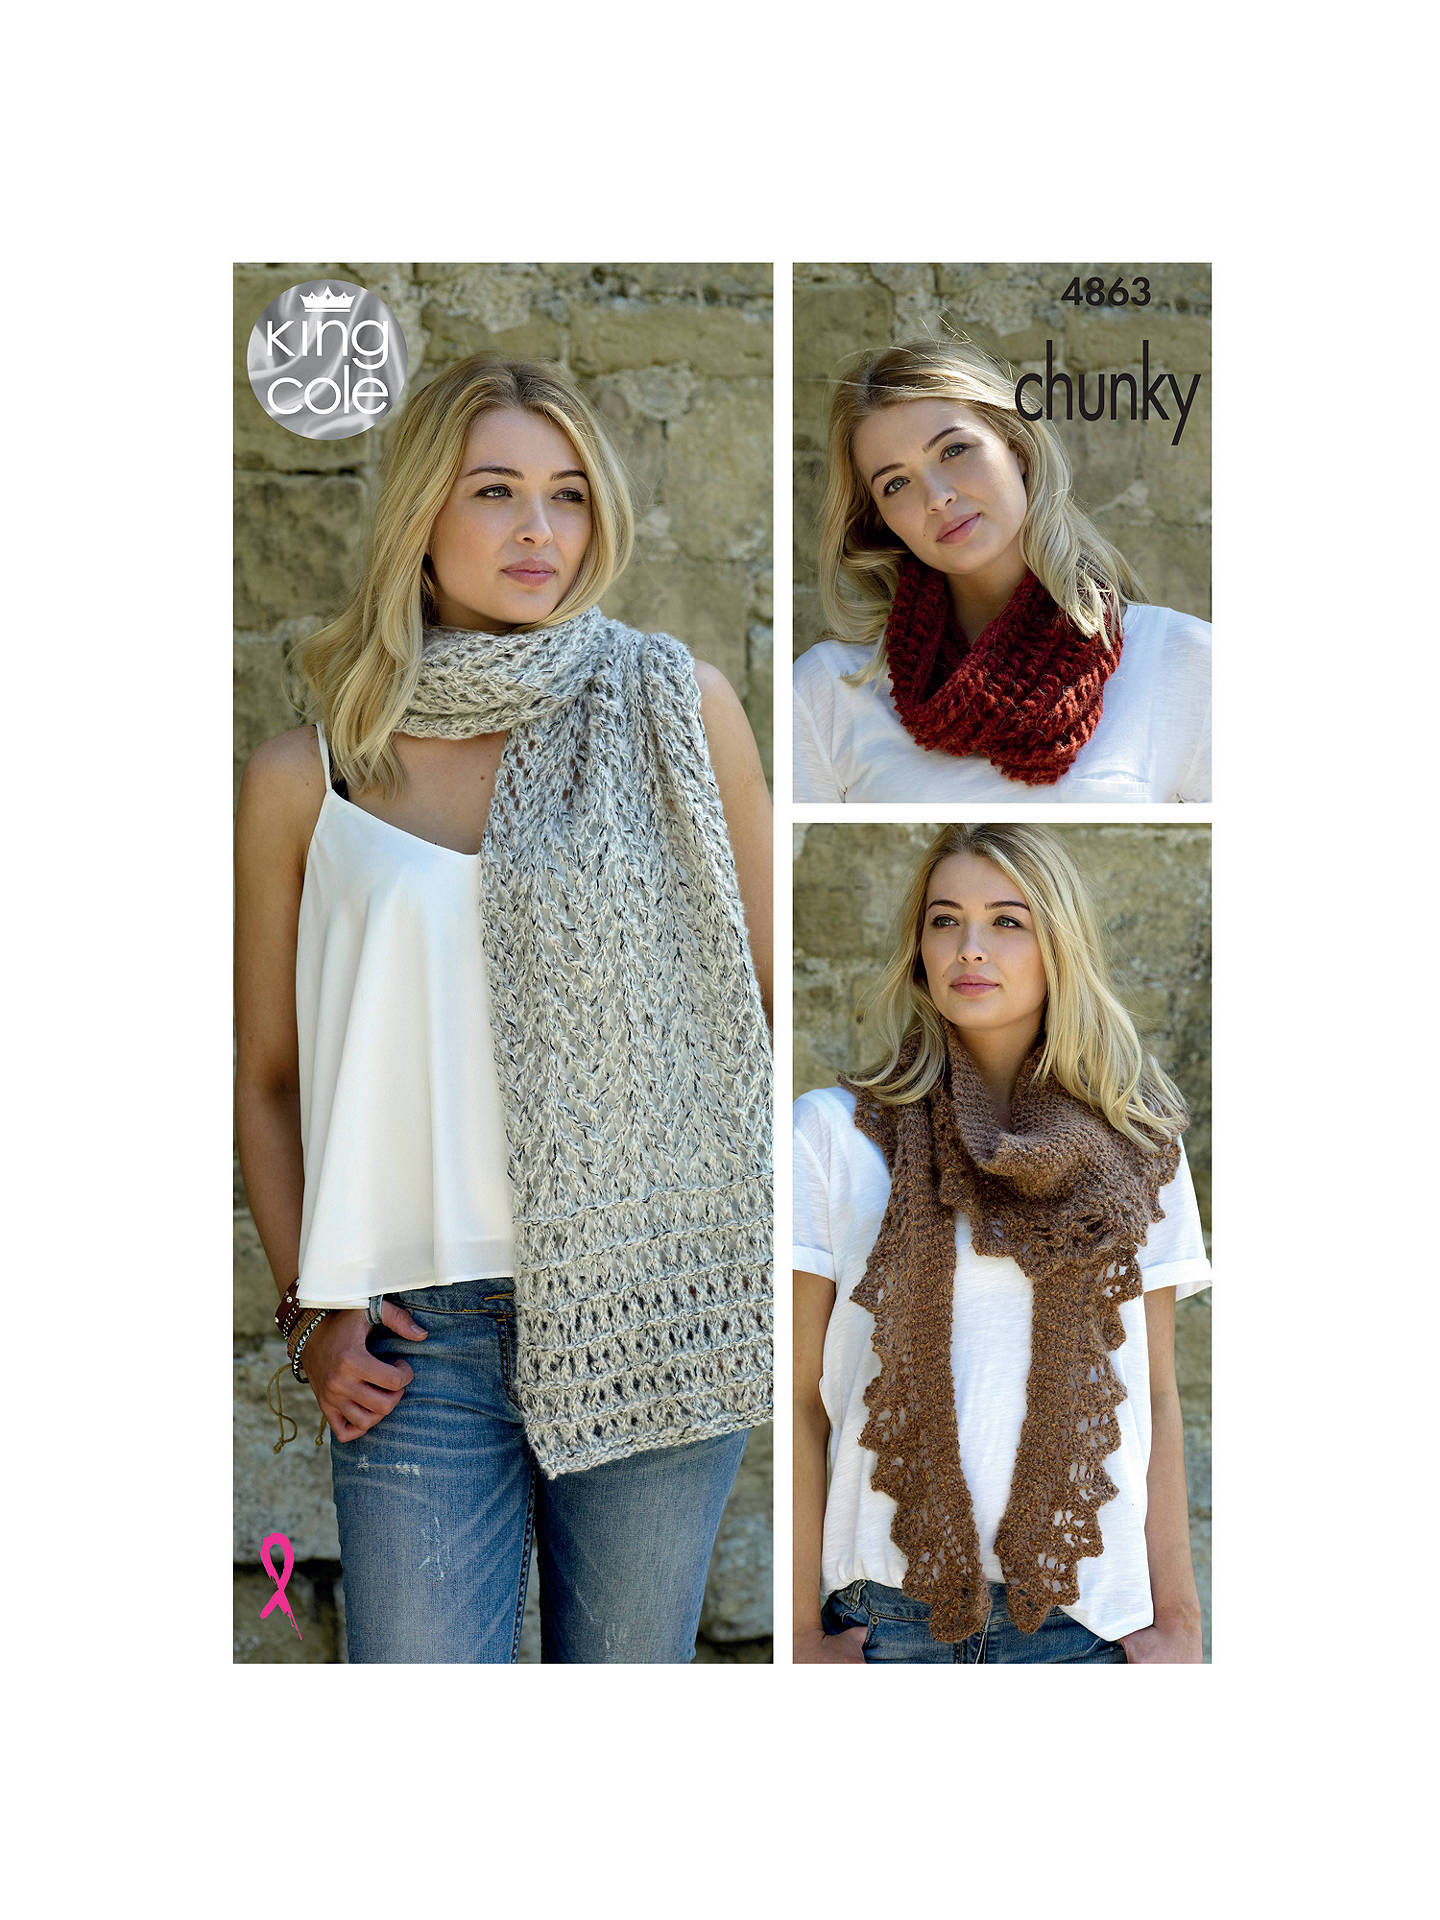 c2679bb09 King Cole Riot DK Ladies Round and V-Neck Sweater Knitting Pattern ...